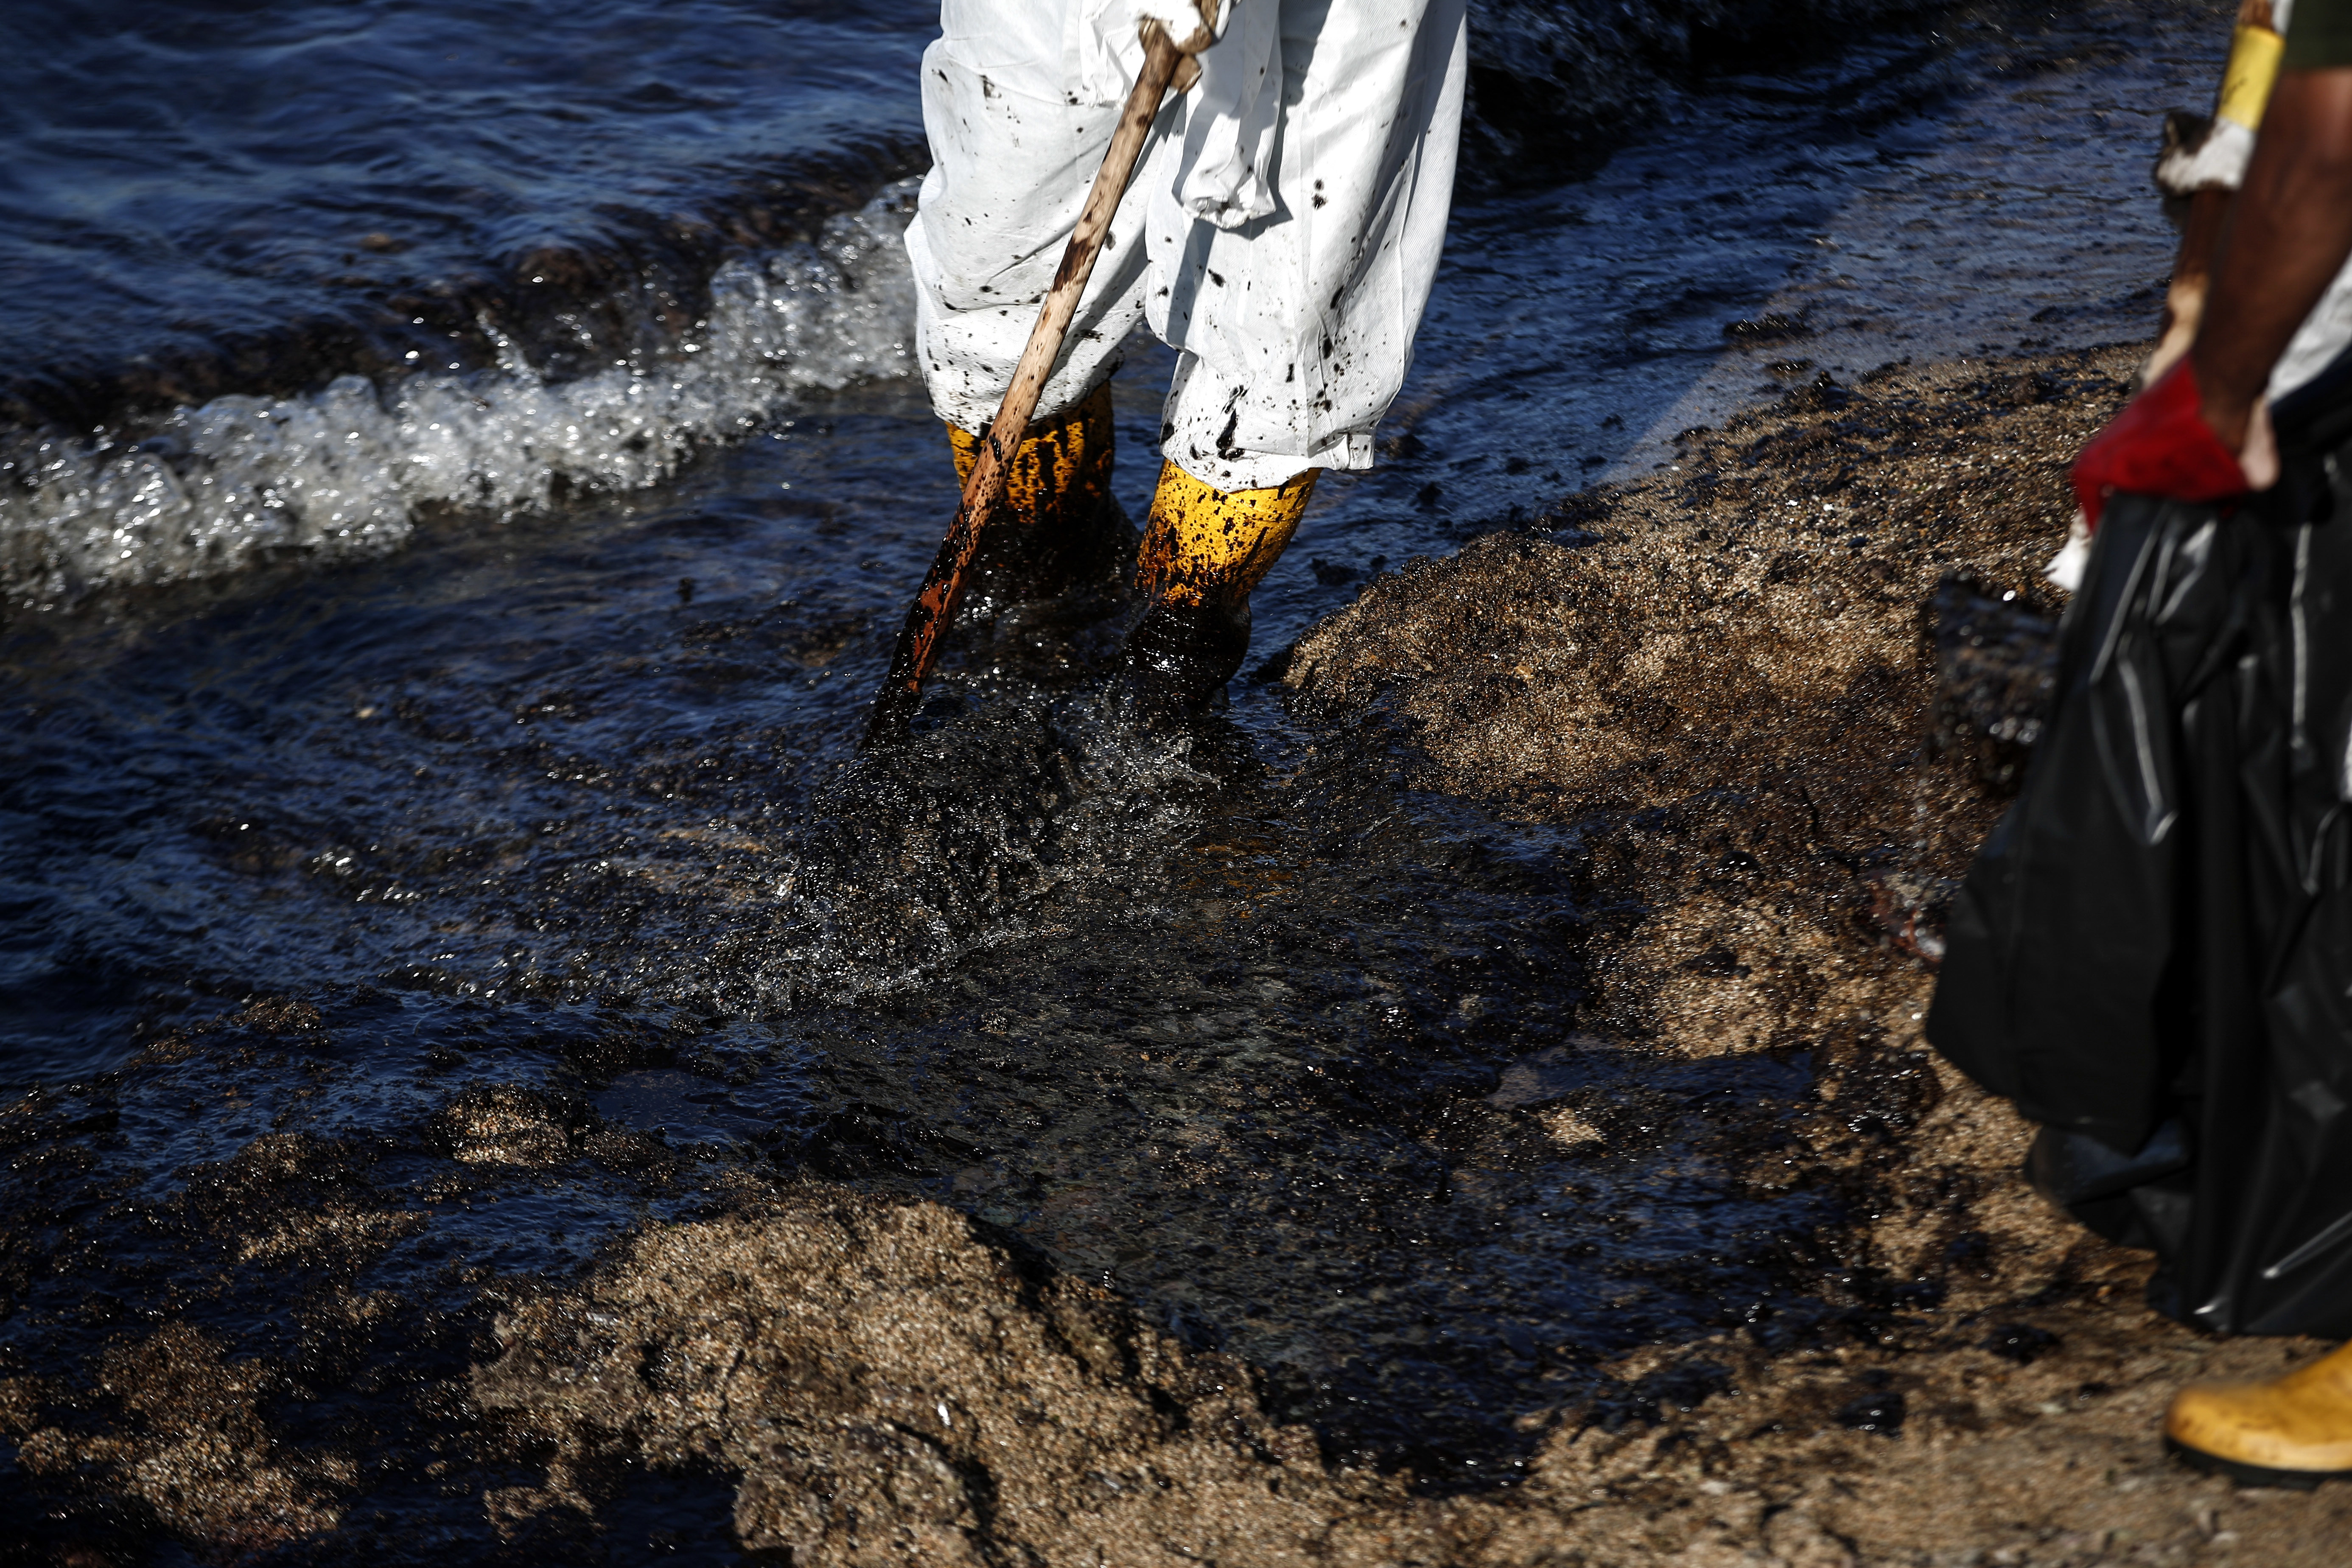 Greece Oli Spill-2 Workers clean a beach of an oil spillage at Faliro suburb, near Athens, on Thursday,Sept. 14, 2017. Greek authorities insist they are doing everything they can to clean up pollution caused by an oil spill following the sinking of a small oil tanker that has left large sections of the Greek capital's coastal areas coated in viscous, foul-smelling oil. (AP Photo/Yorgos Karahalis)